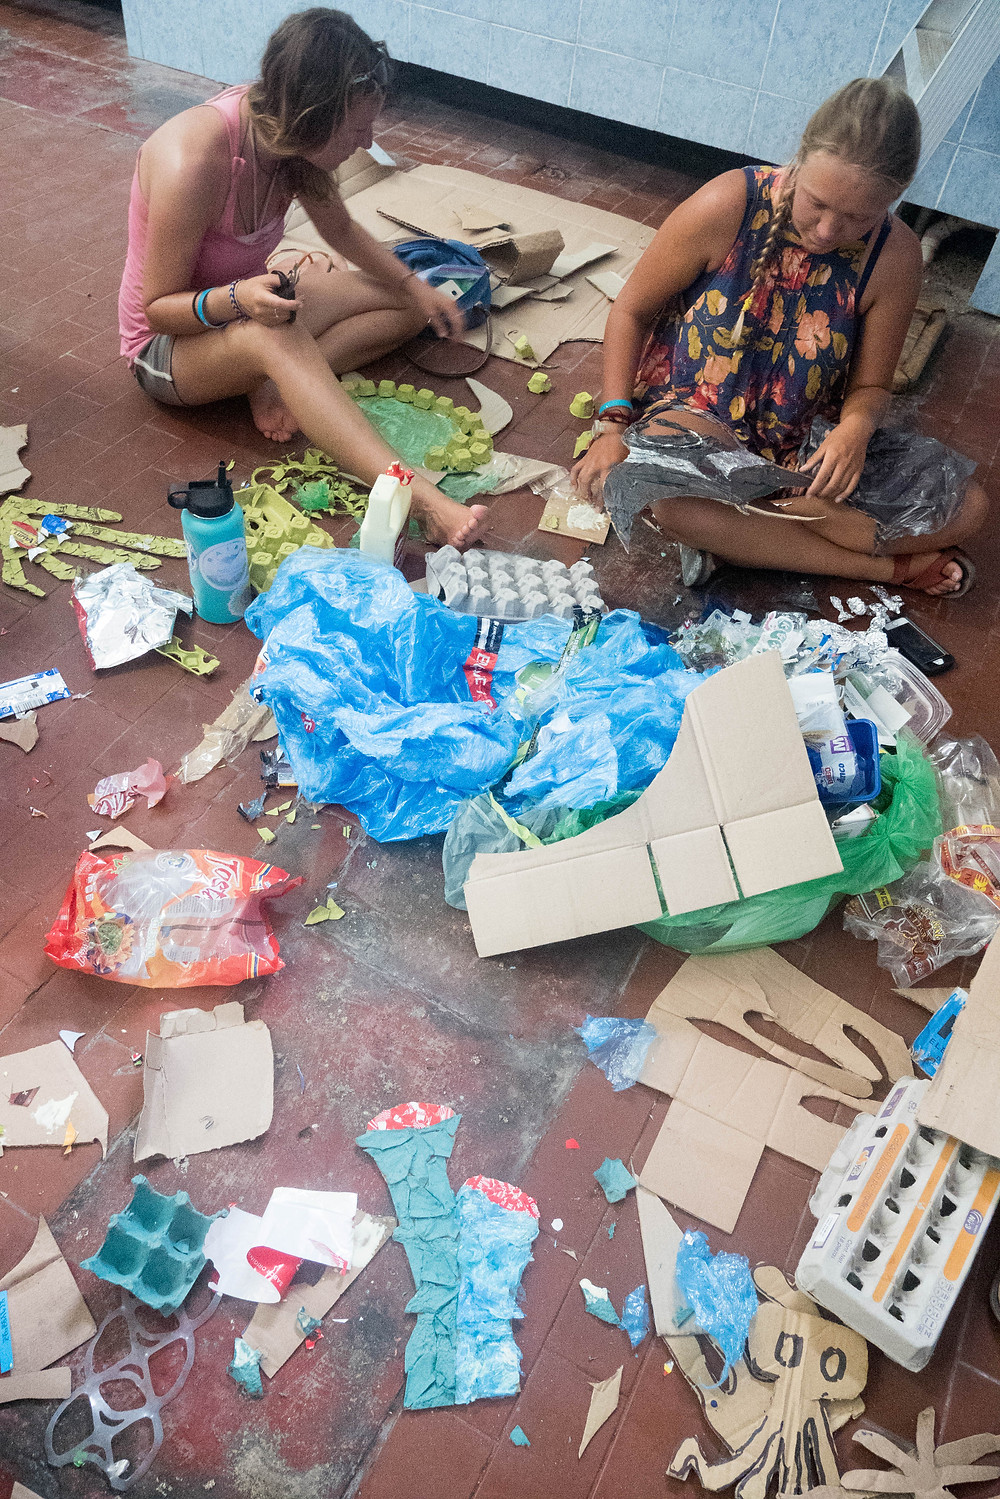 Claudia and Addison working on the mural, surrounded by rubbish.